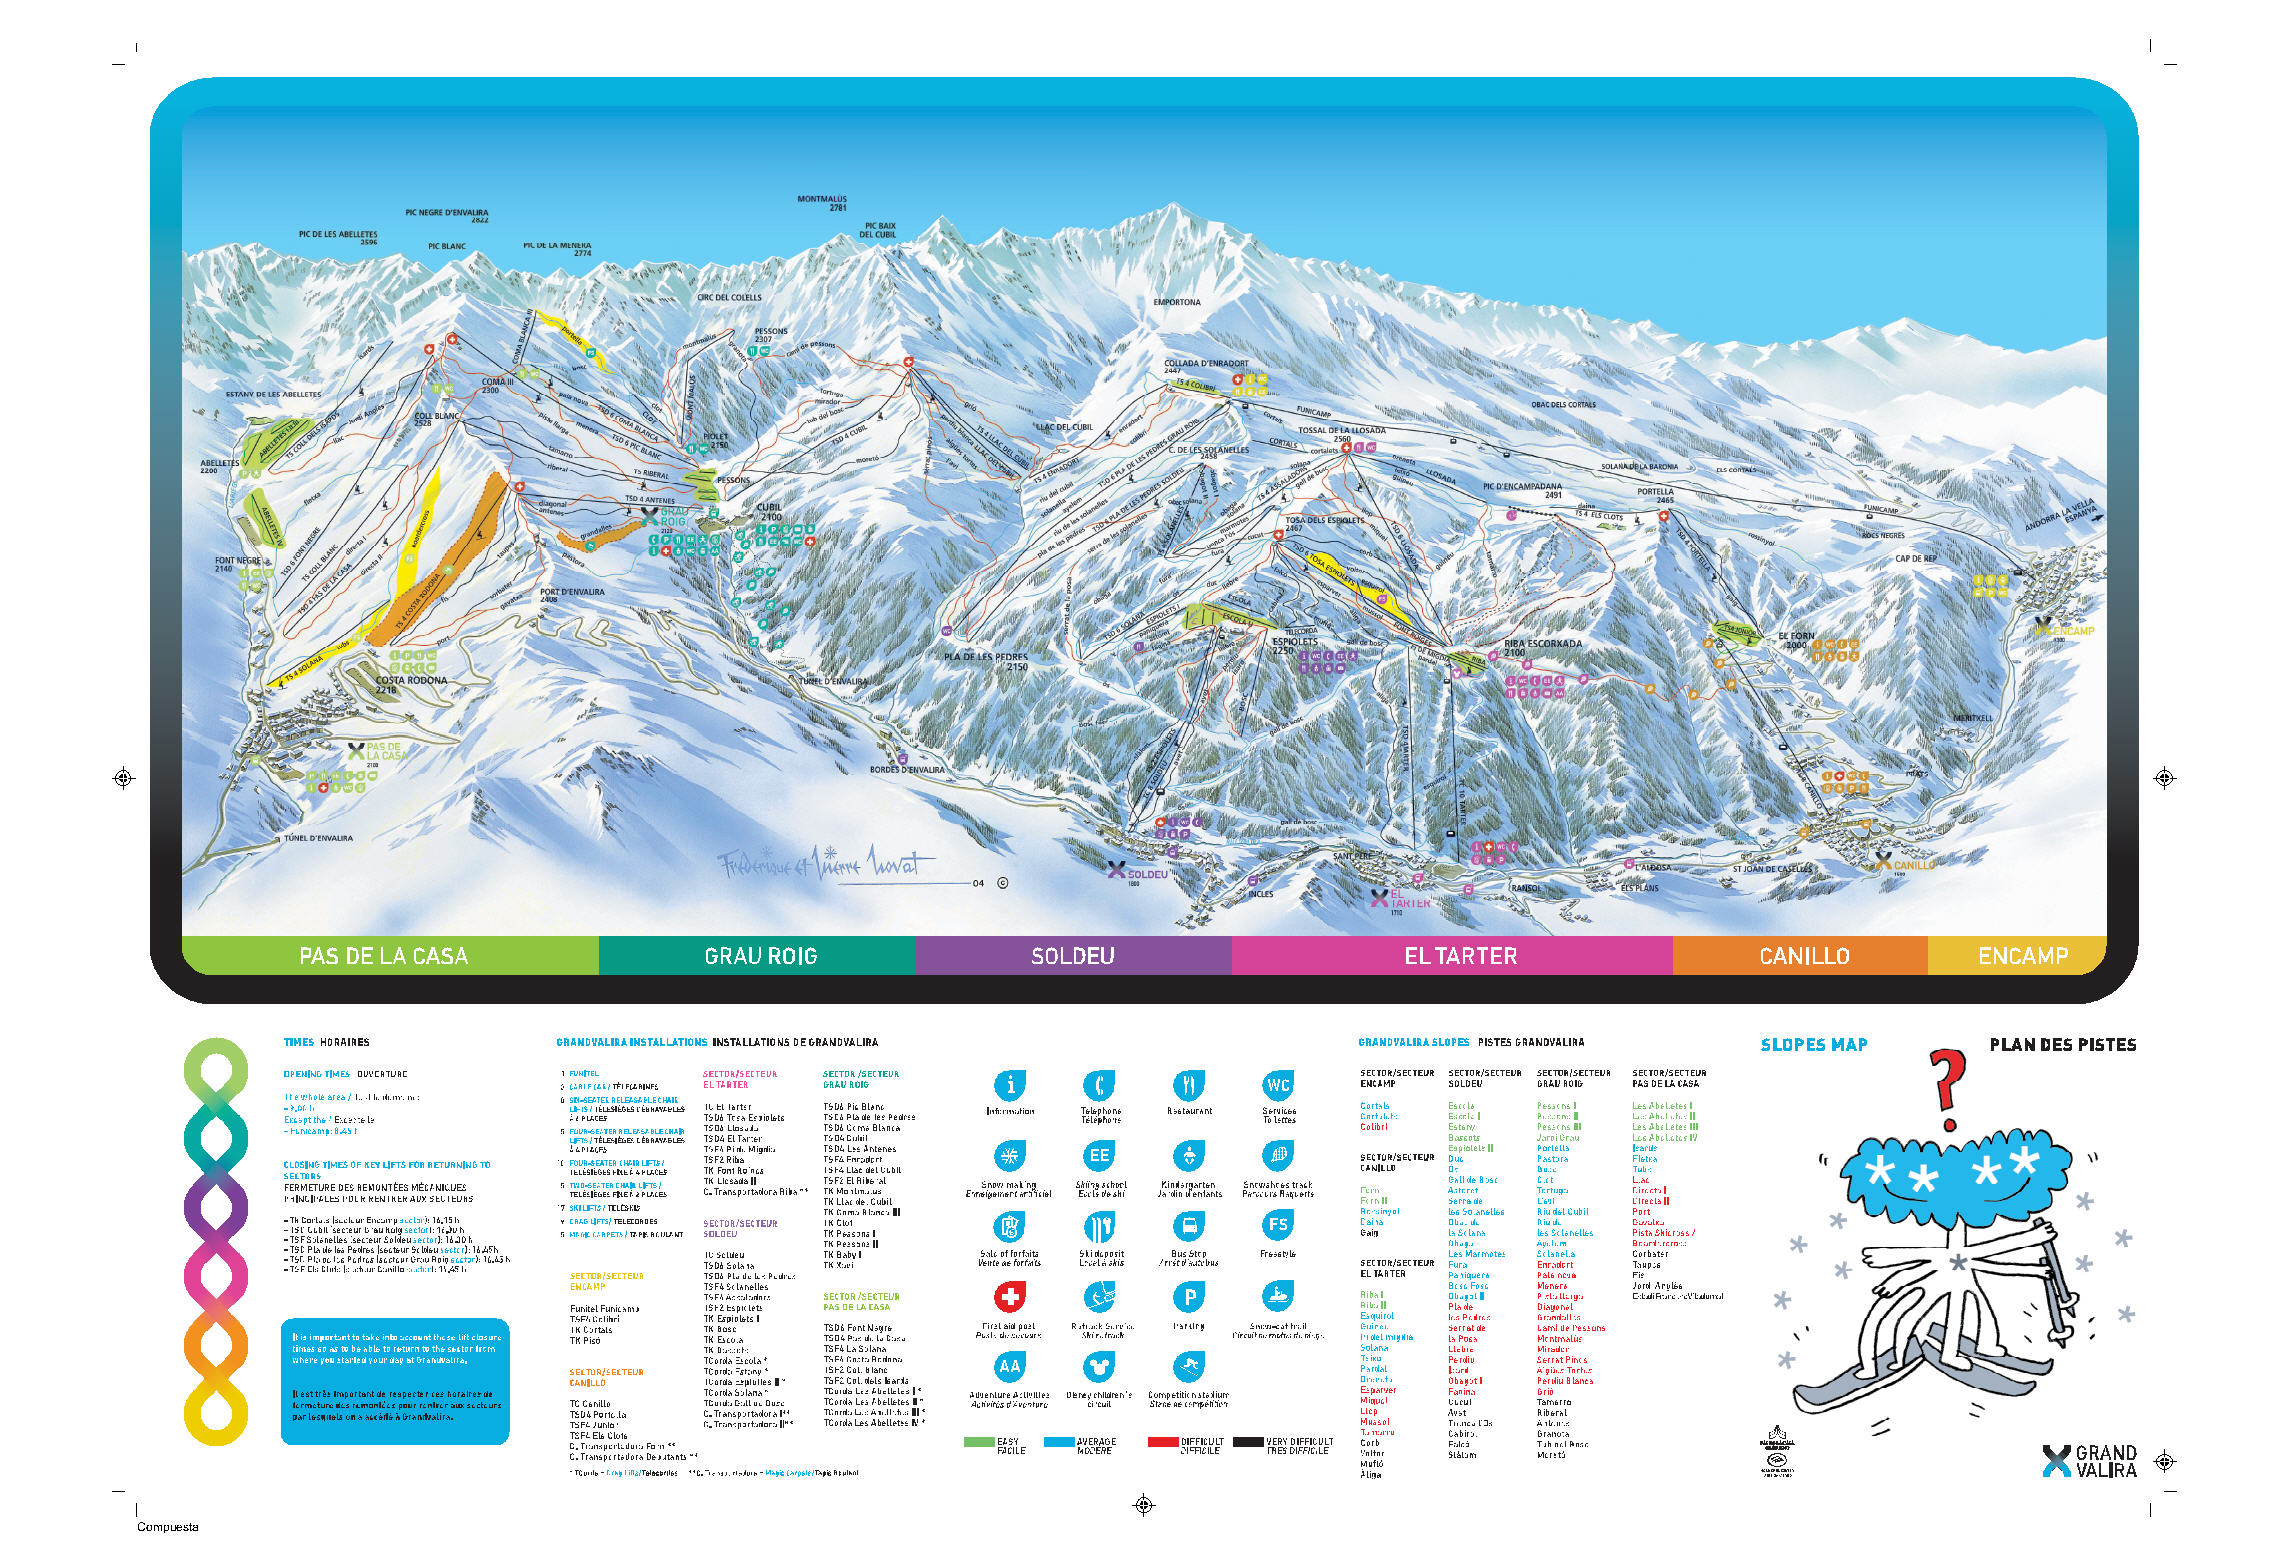 Grandvalira-Canillo Piste / Trail Map